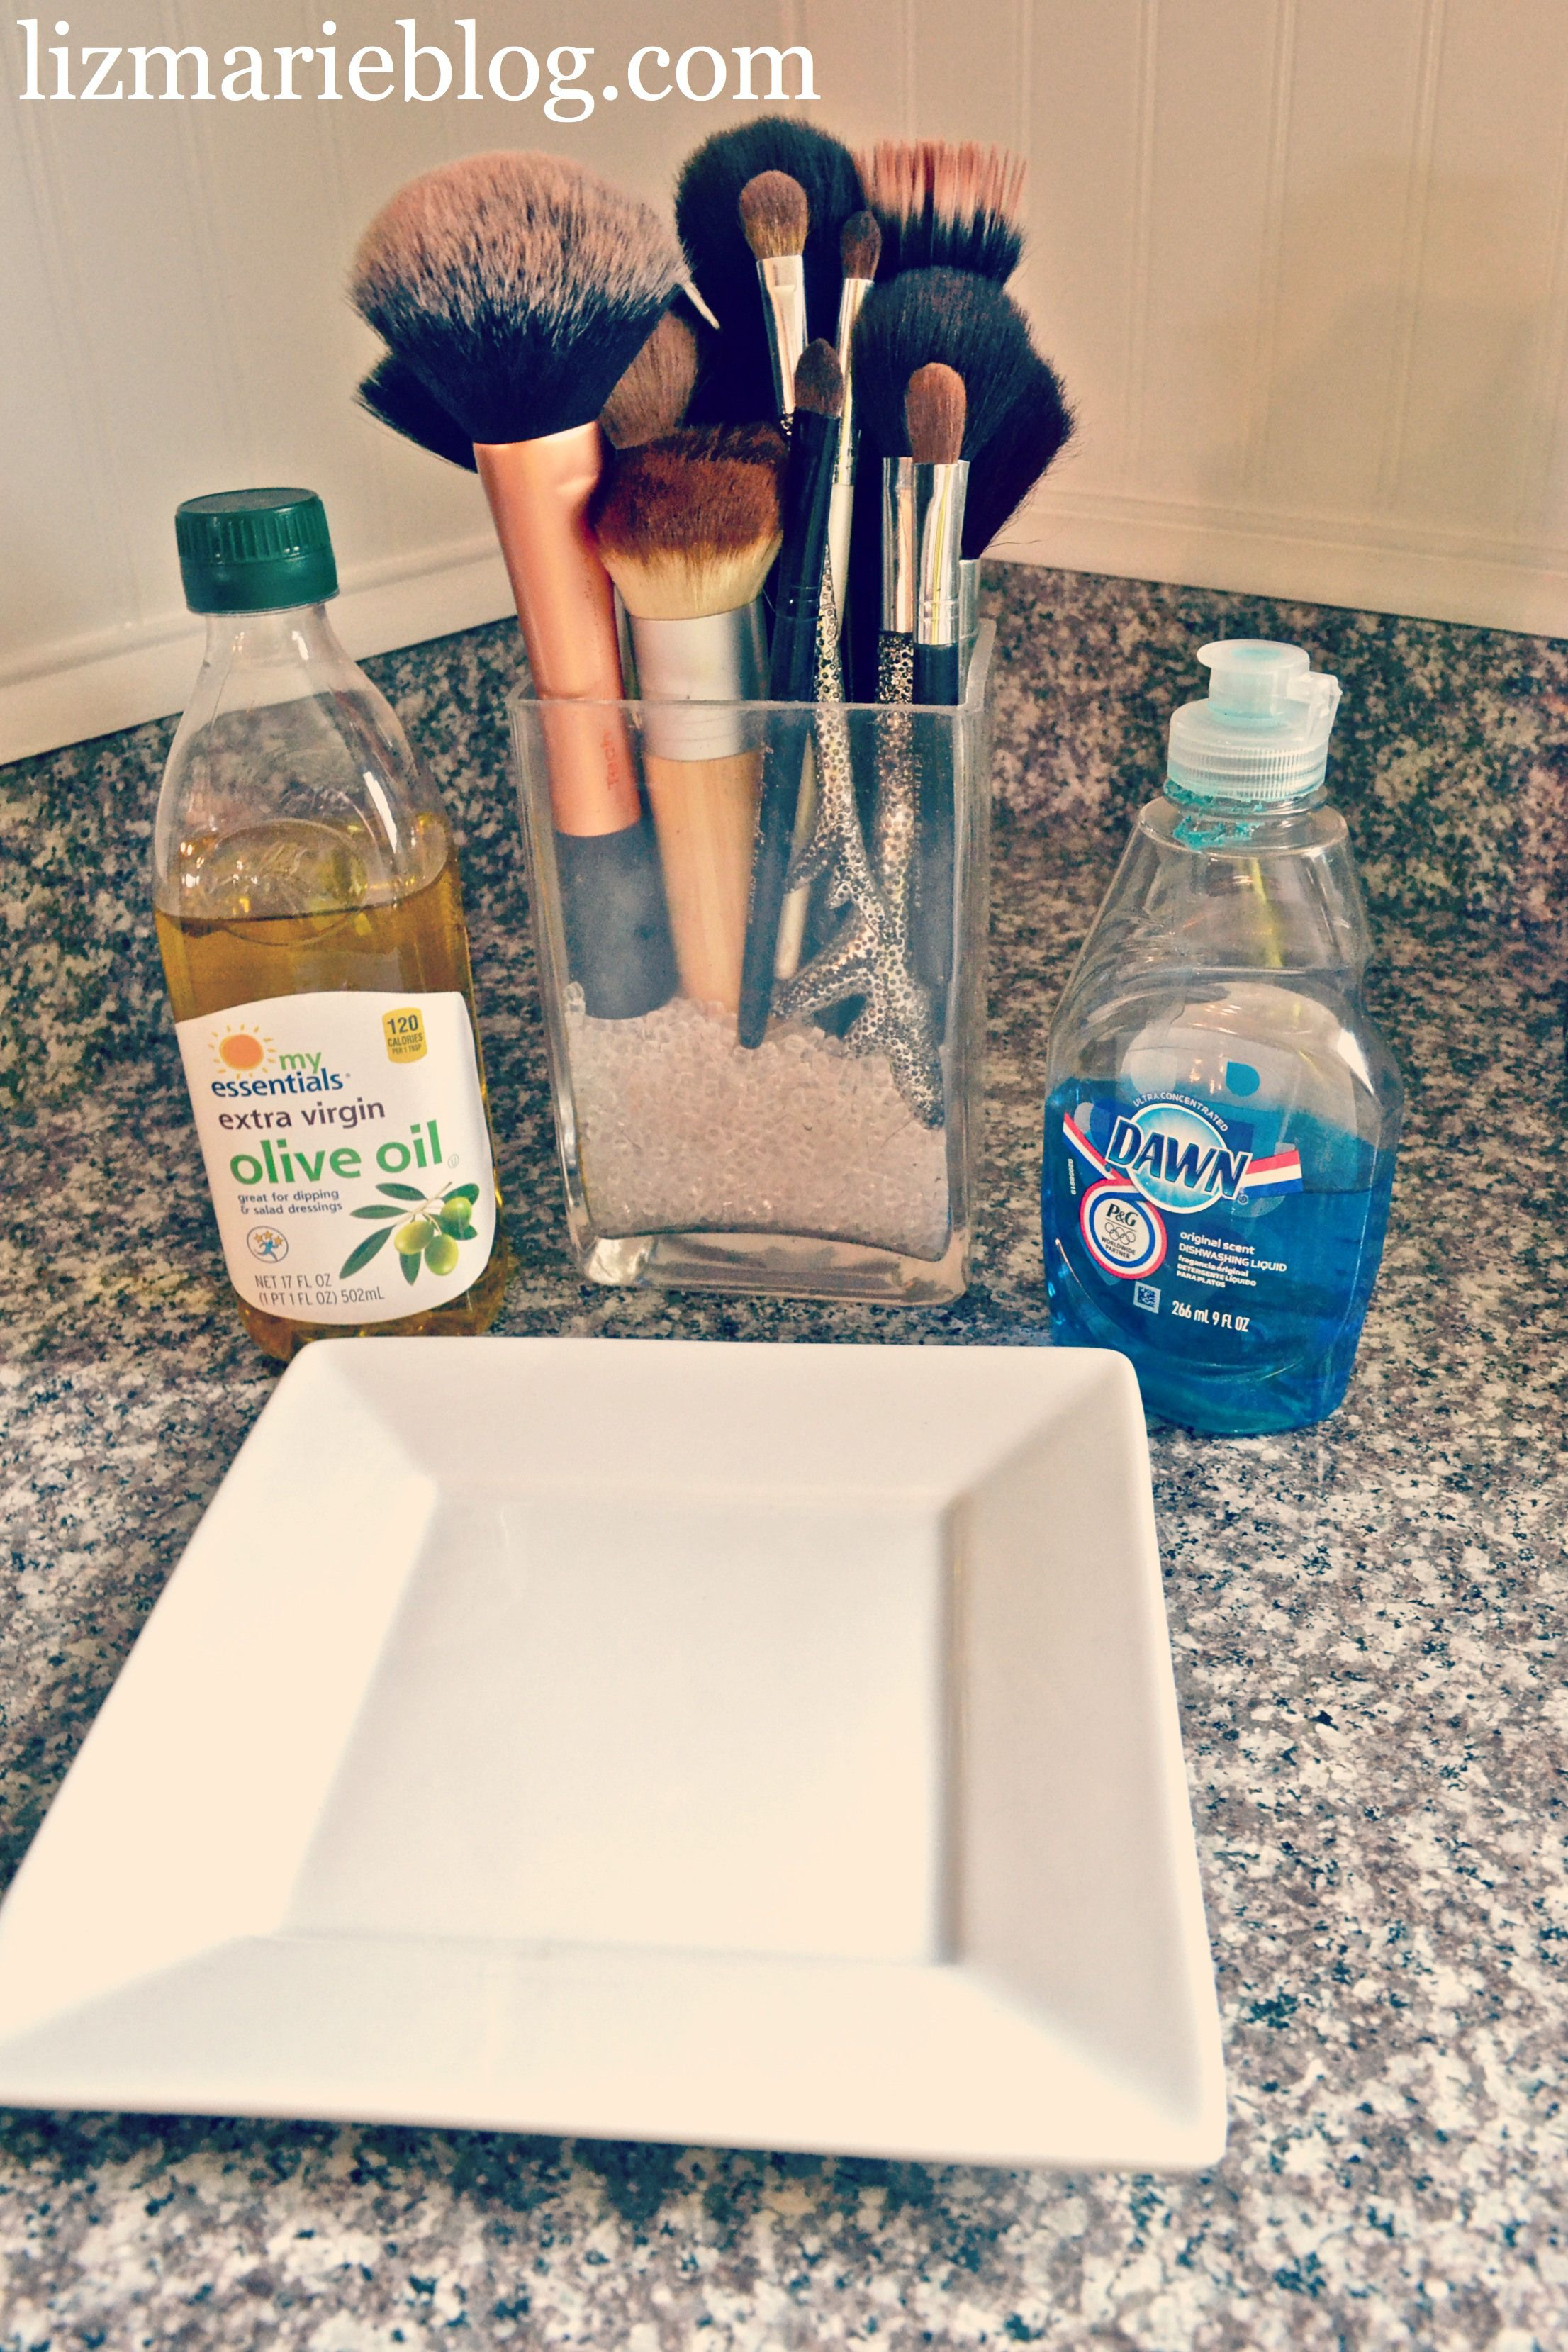 how to clean oil brushes with turpentine